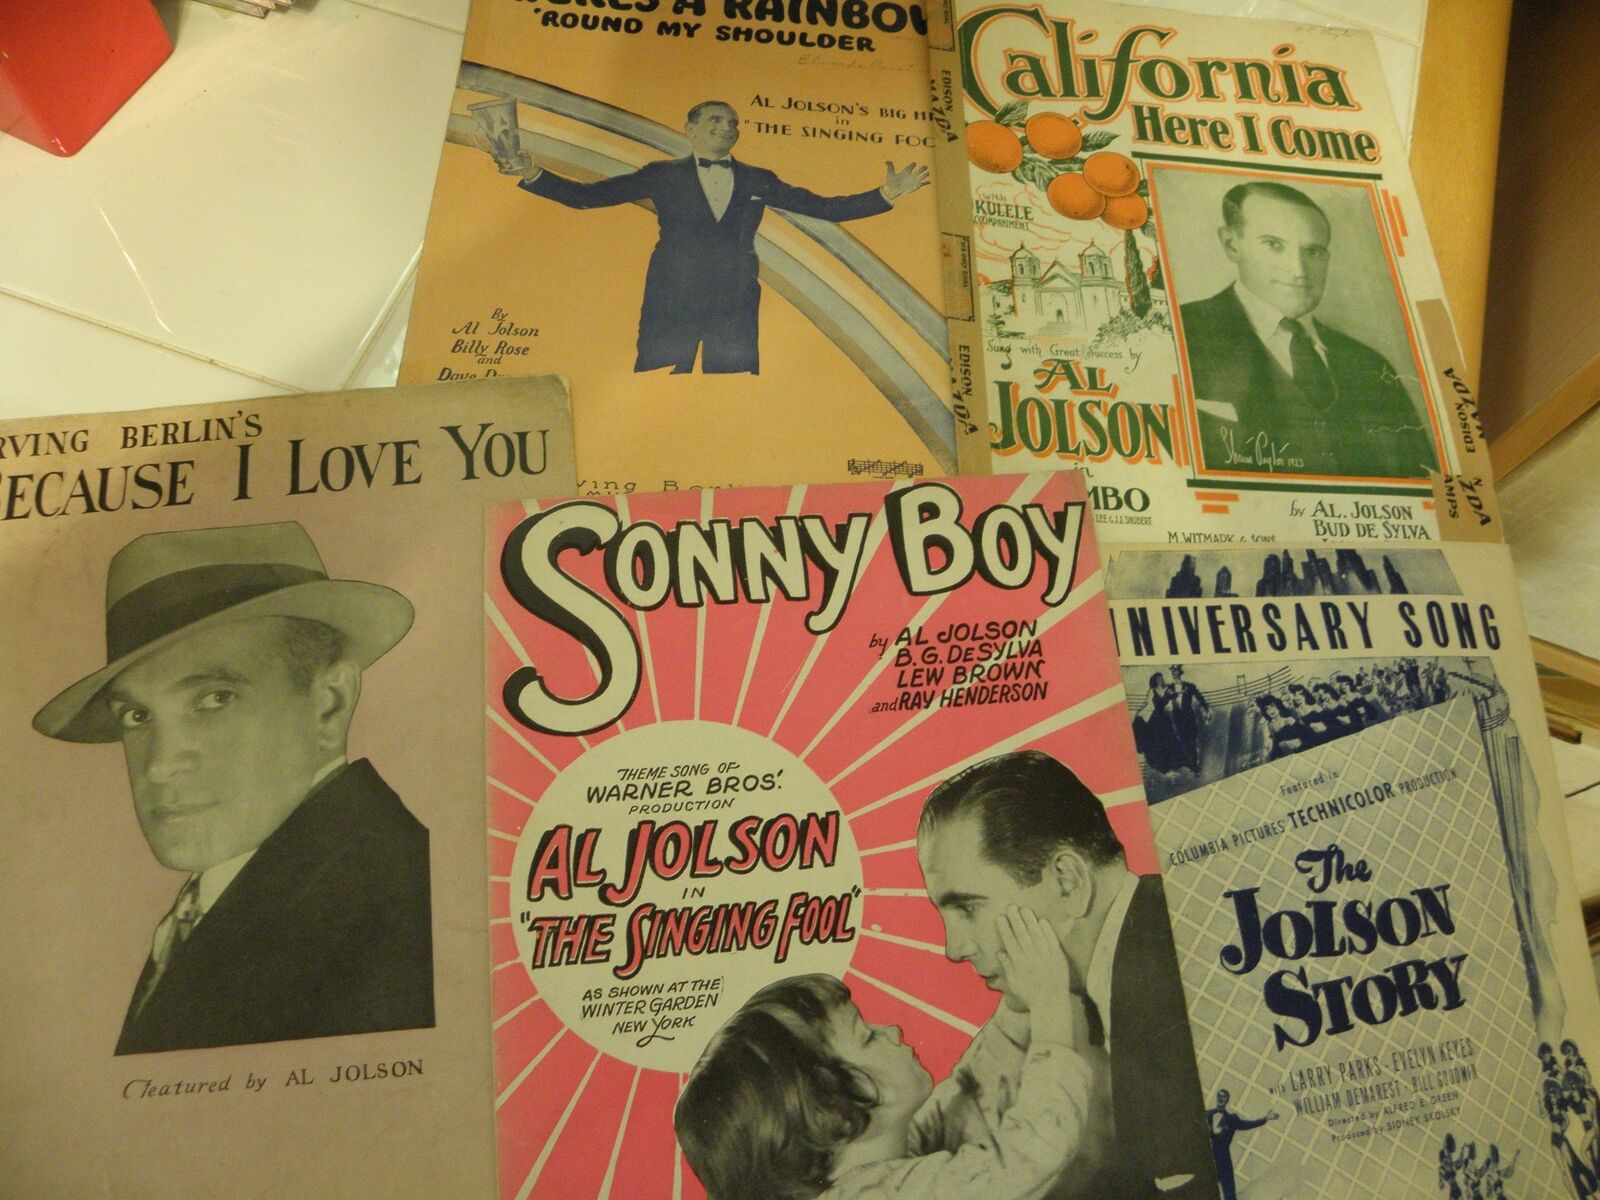 Al Jolson Vintage Sheet Music Lot of 5 1924-1946 California Here I Come